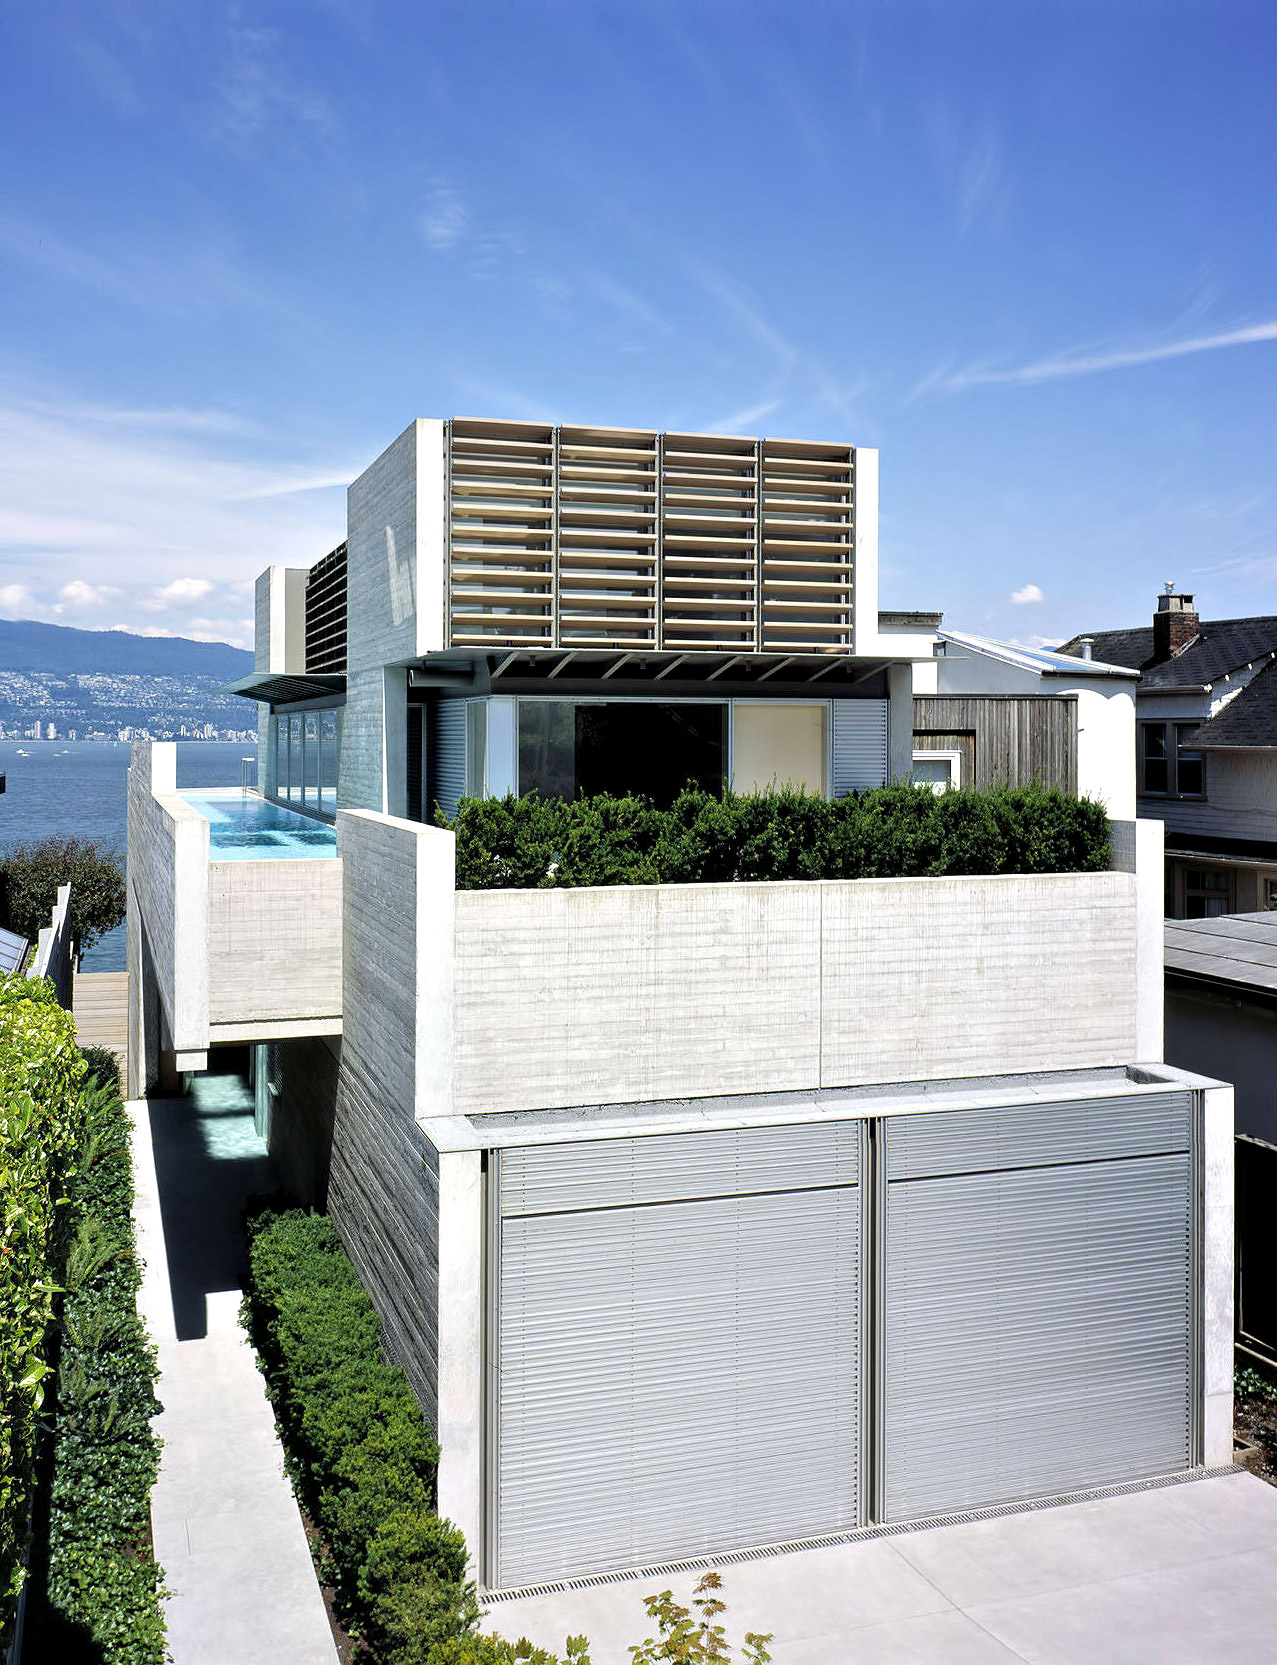 Shaw House Residence – Point Grey Rd, Vancouver, BC, Canada